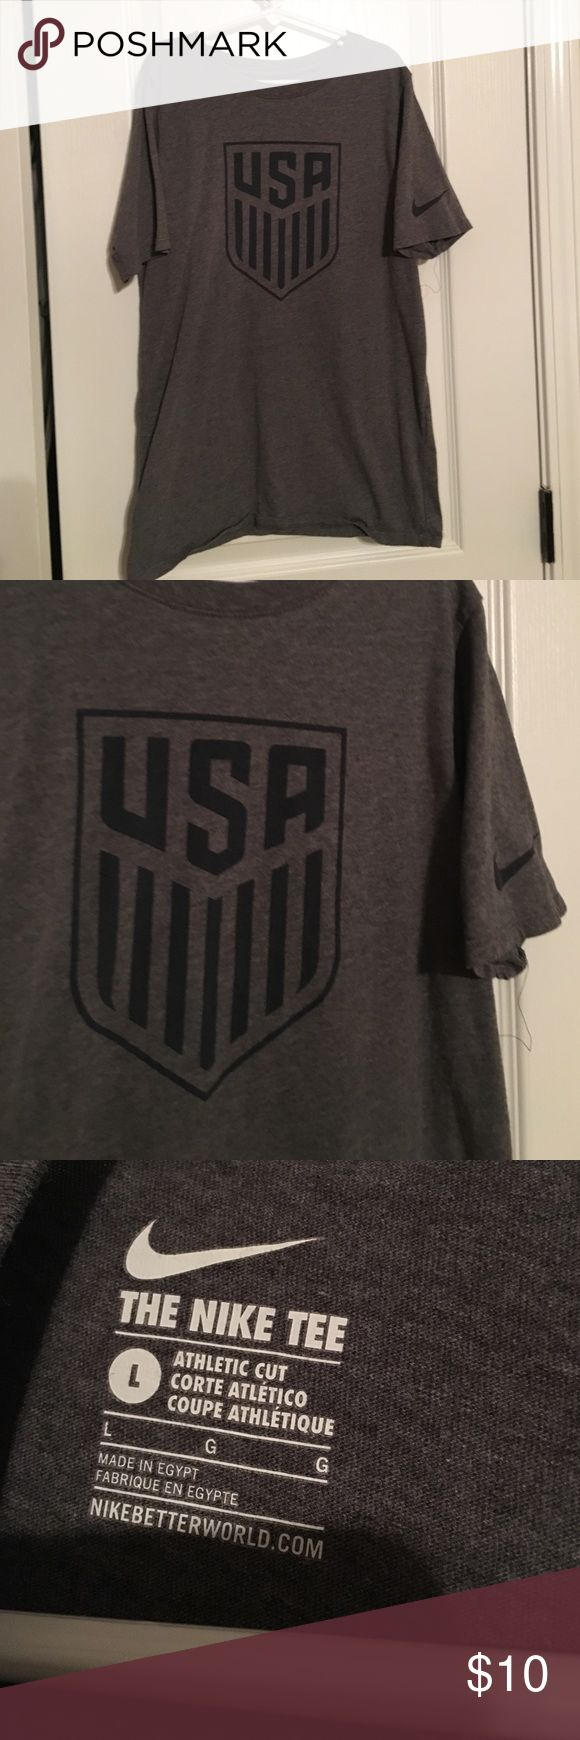 Nike USA soccer shirt Excellent condition. Nike Shirts & Tops Tees - Short Sleeve